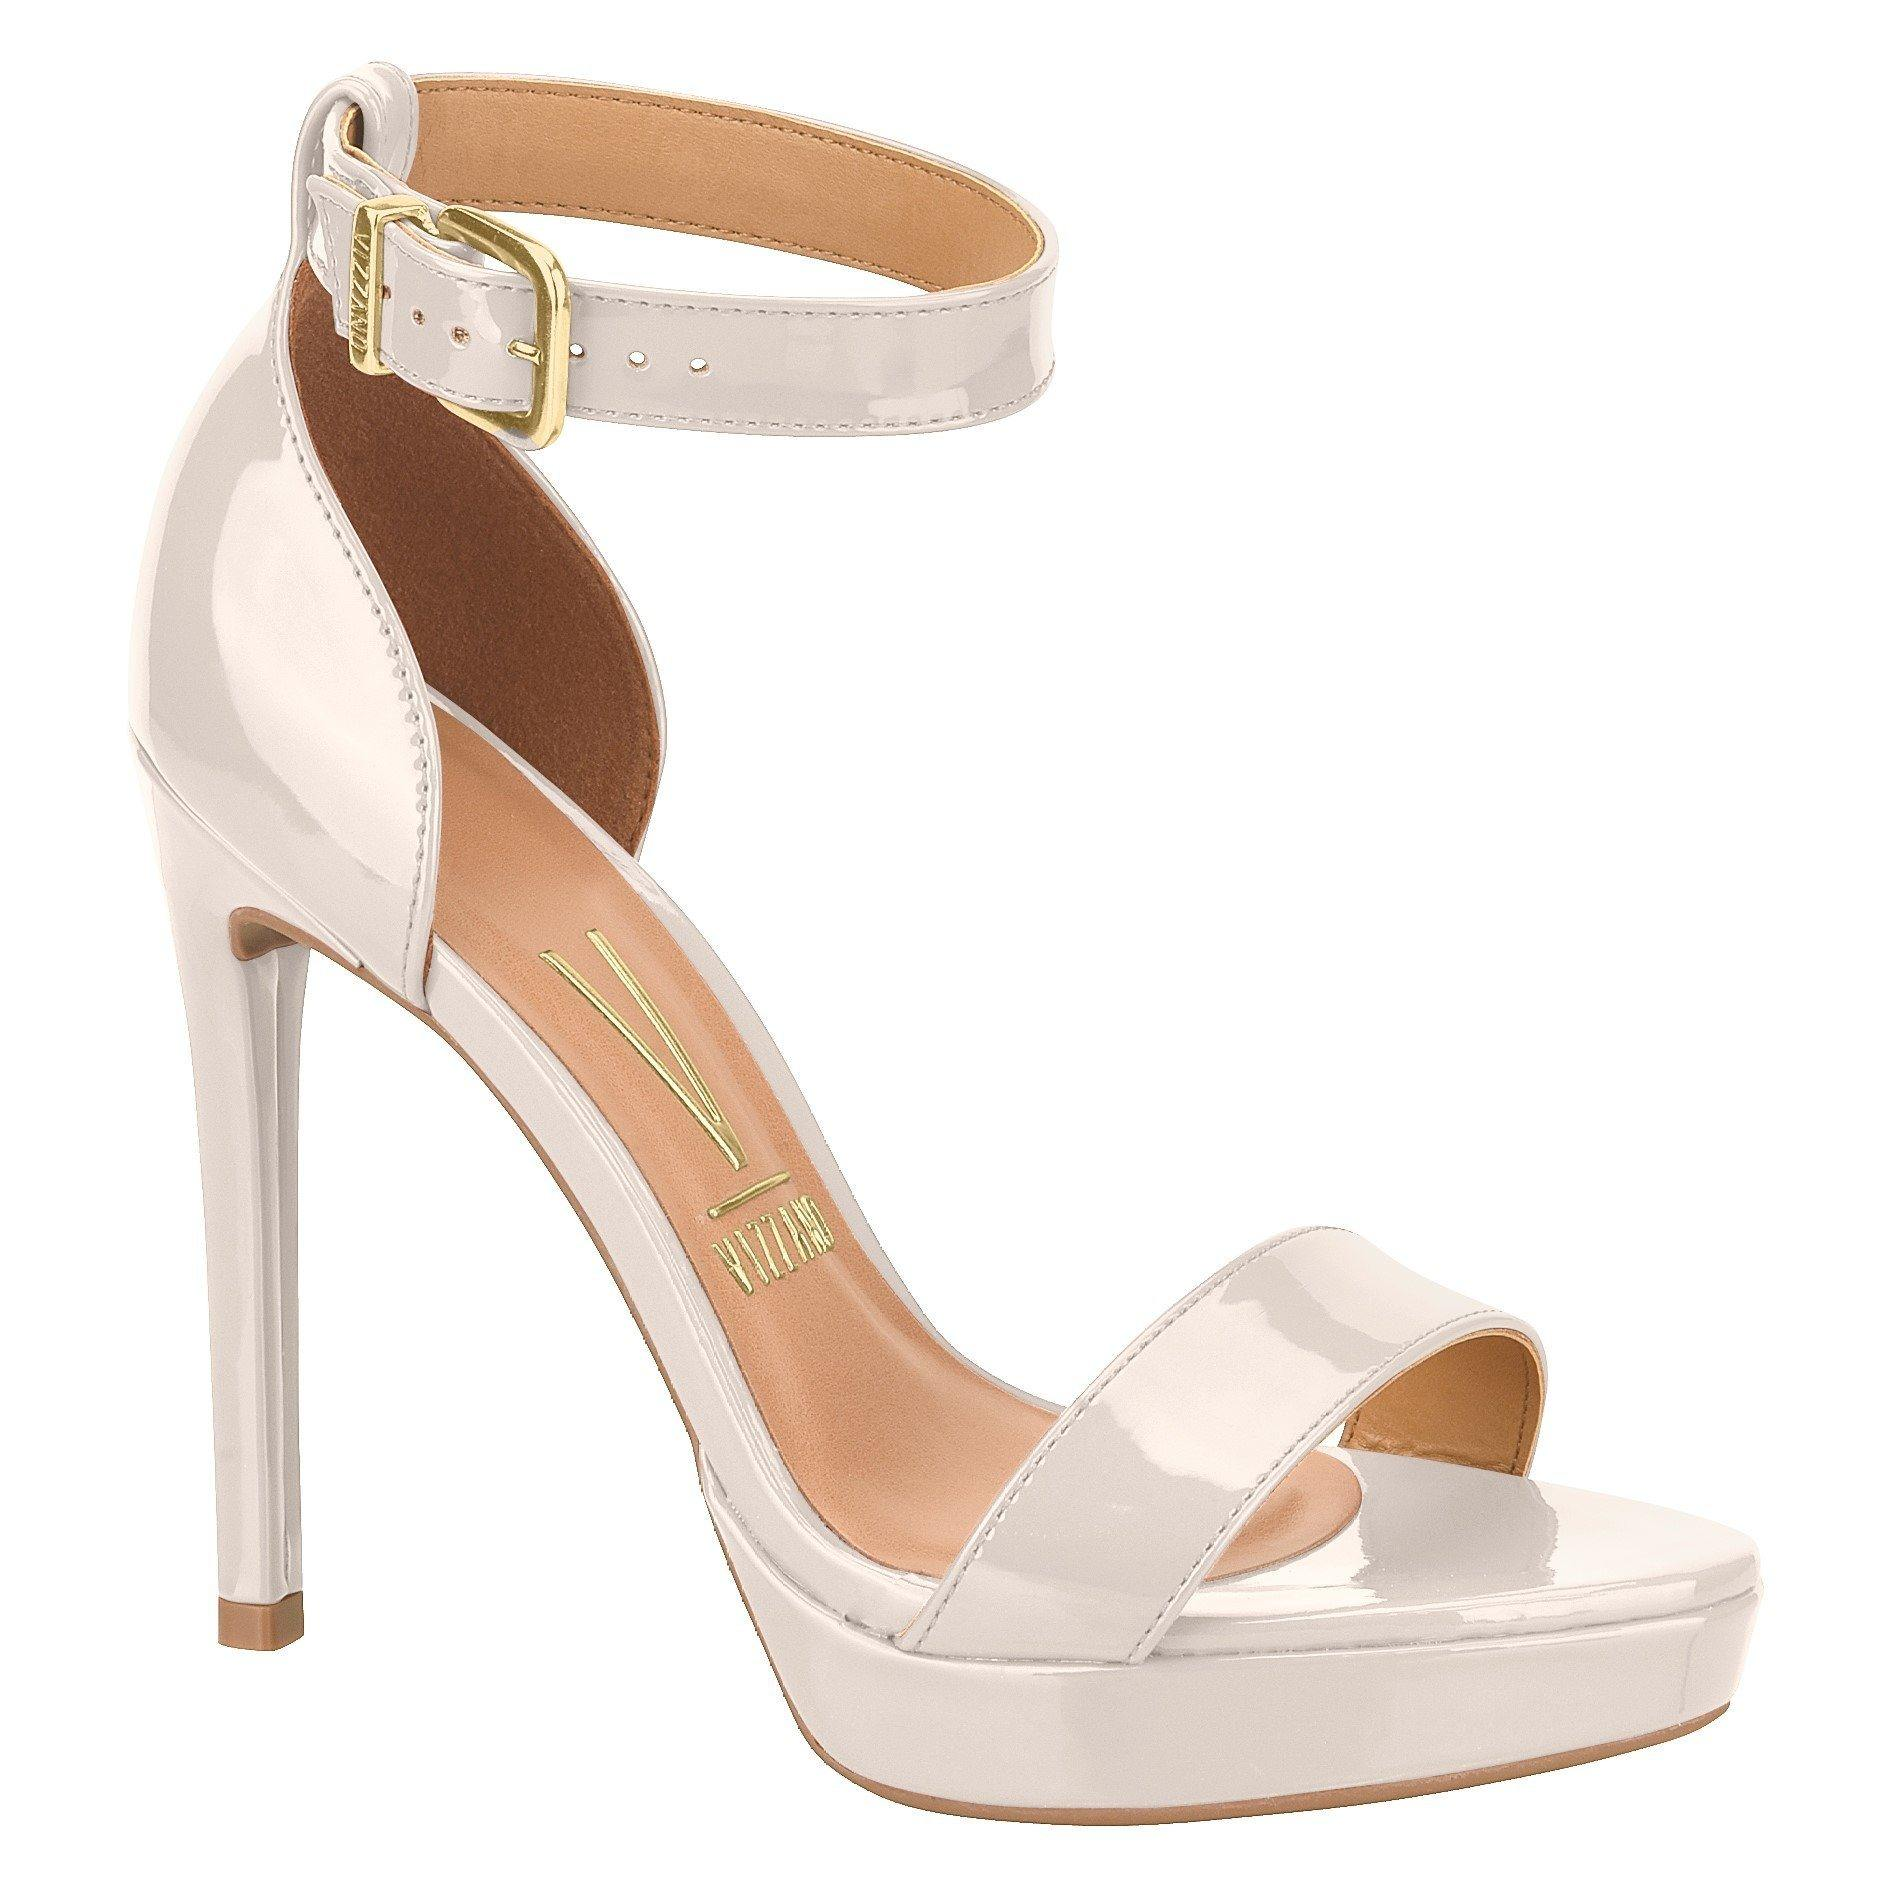 Vizzano 6326-108 High Heel Sandal in Cream Patent